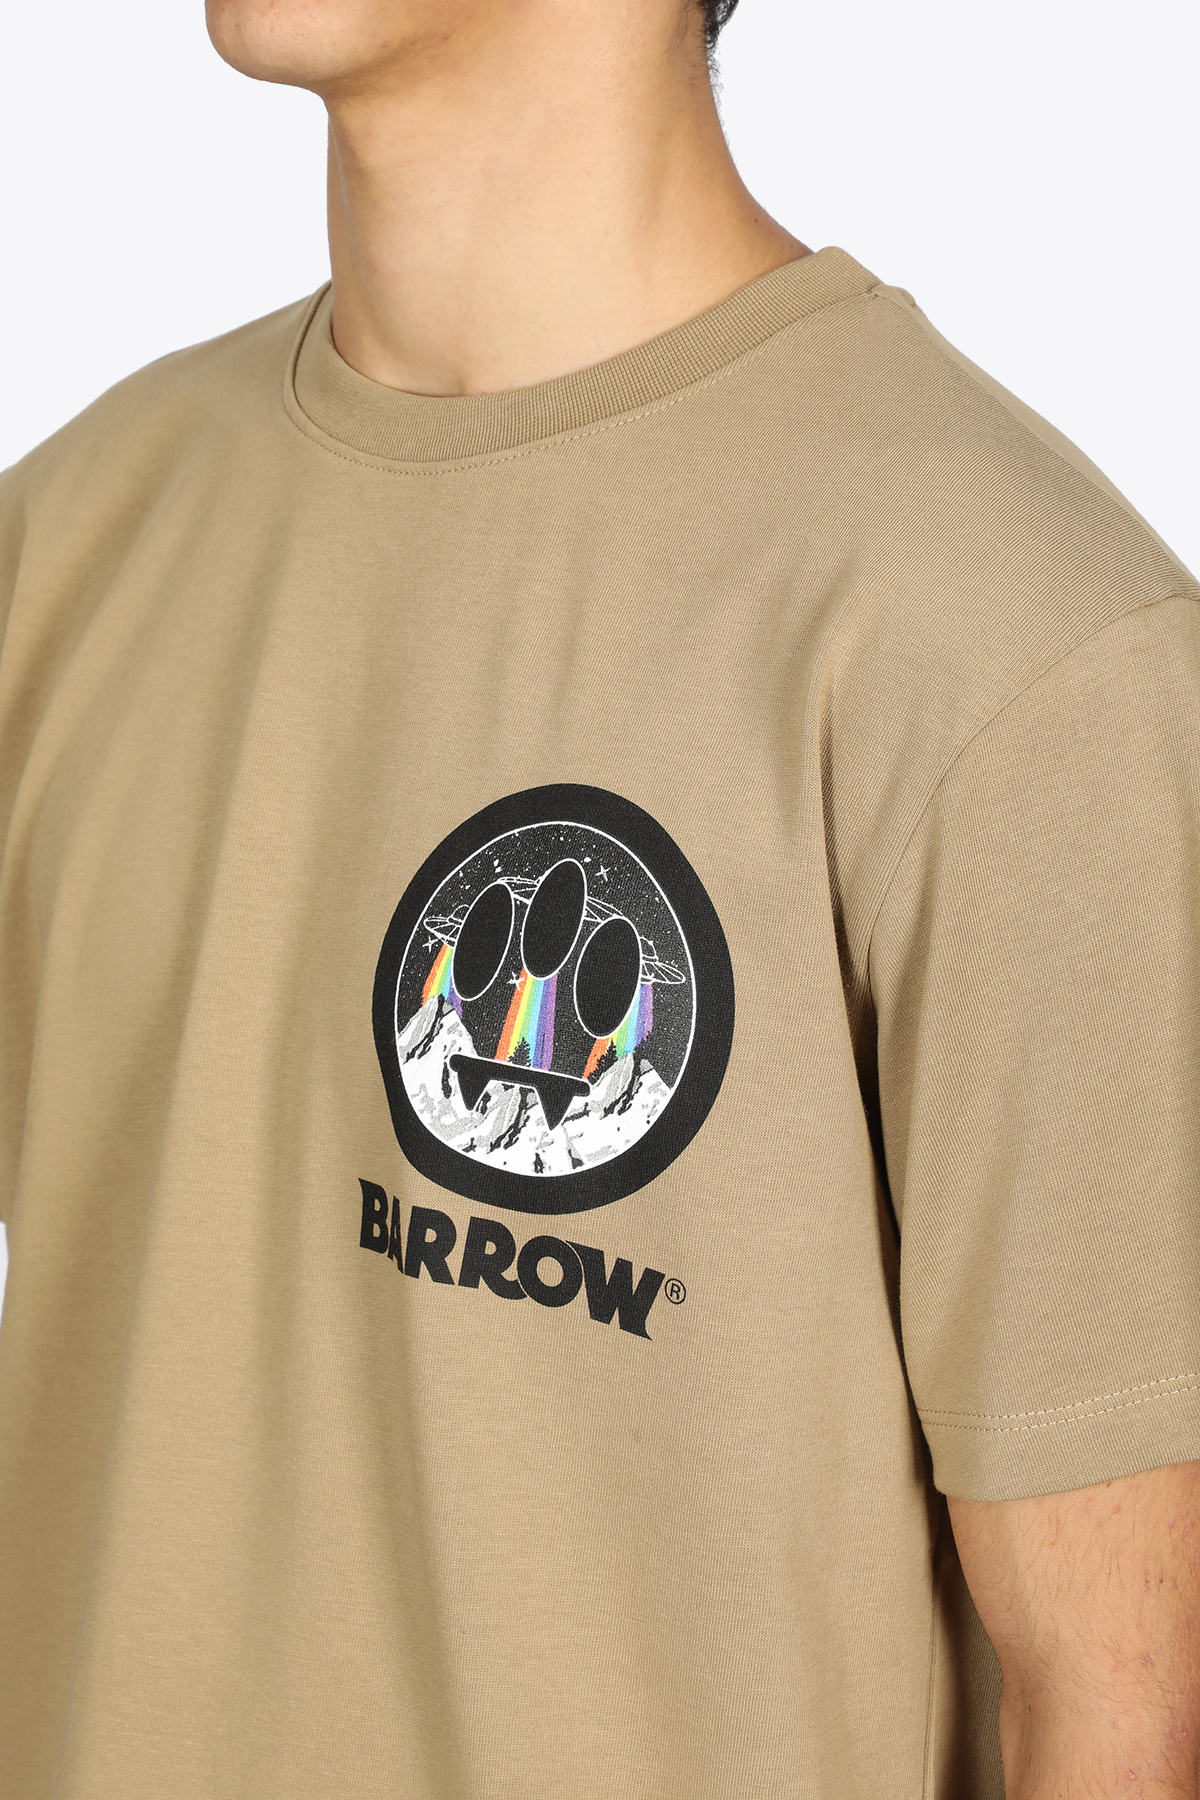 T-SHIRT IN COTONE BEIGE CON SMILE BARROW   8   029922 JERSEY T-SHIRT094